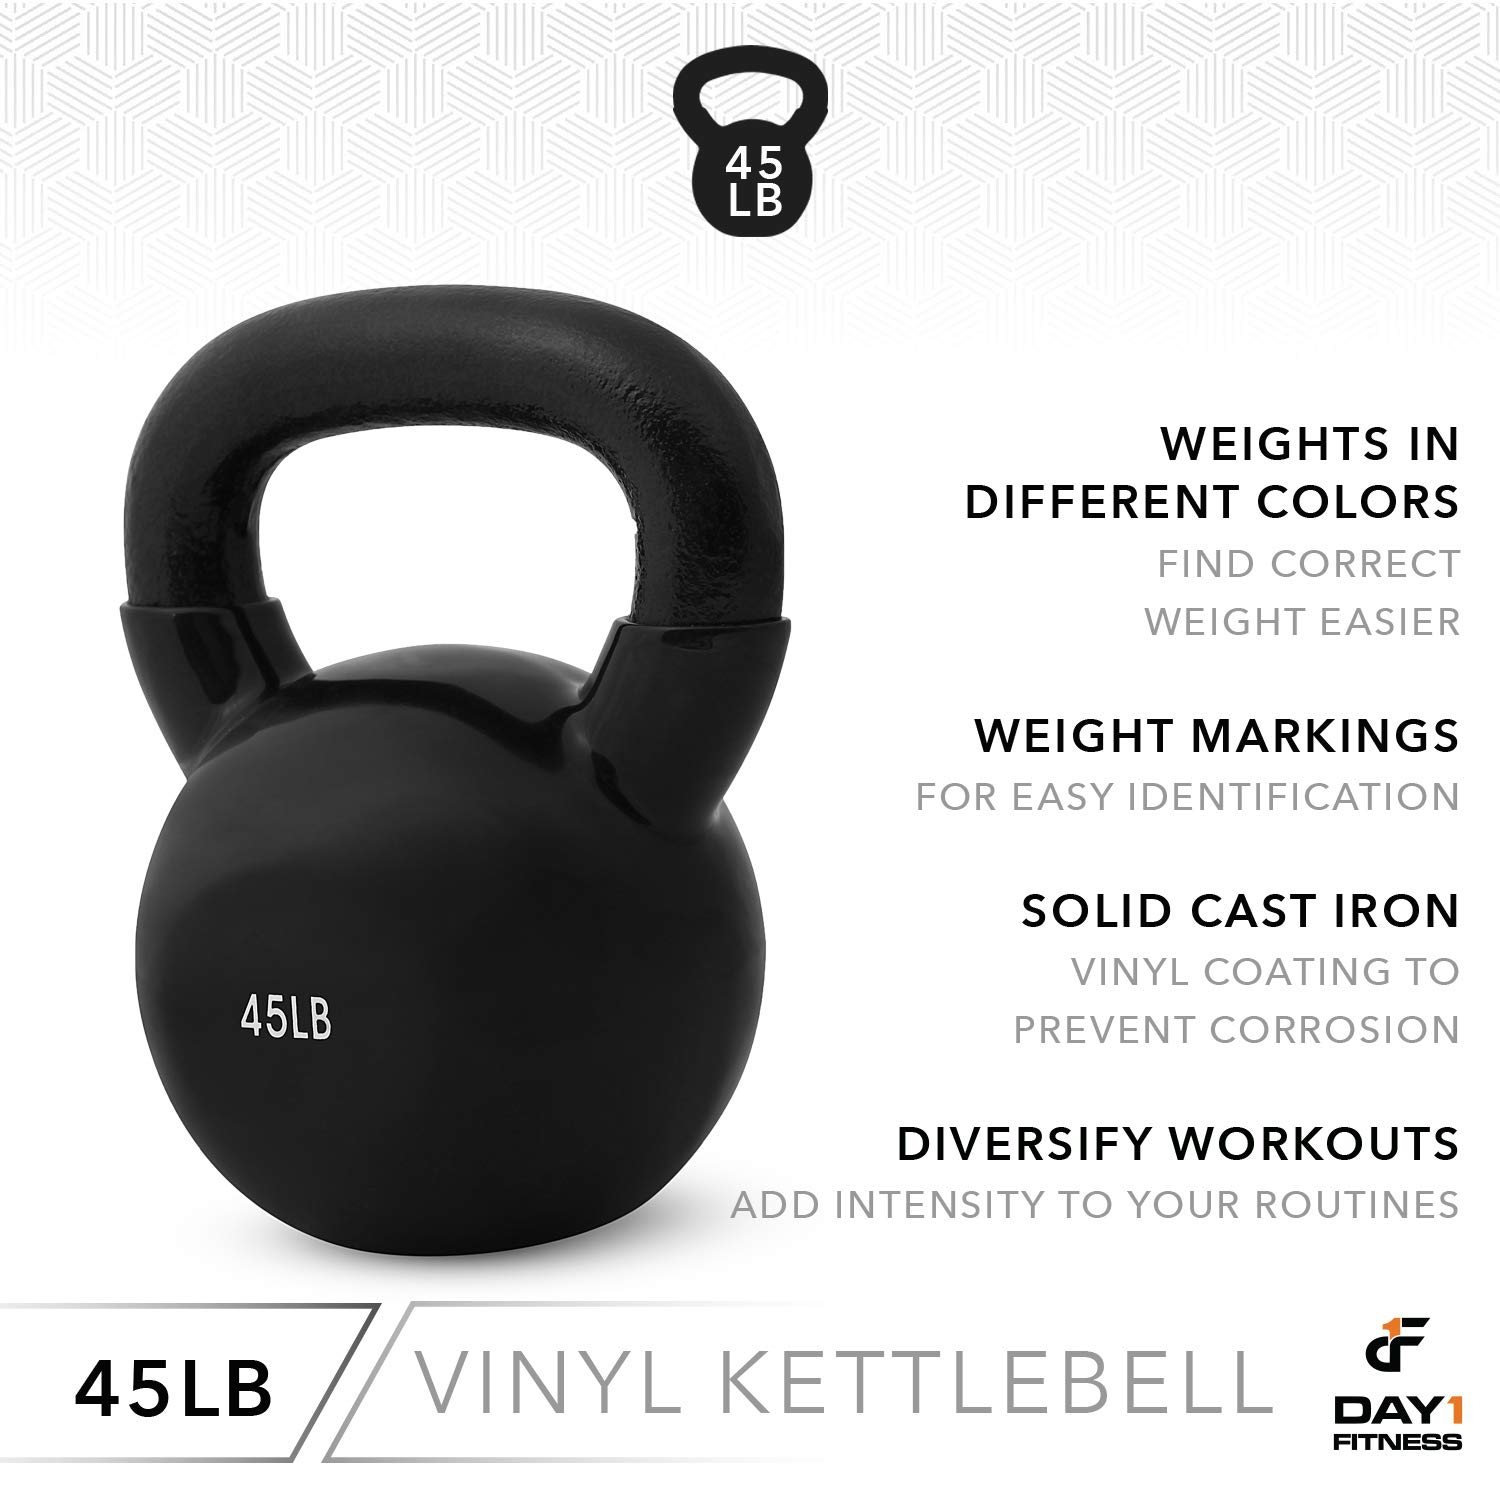 Day 1 Fitness Kettlebell Weights Vinyl Coated Iron 45 Pounds - Coated for Floor and Equipment Protection, Noise Reduction - Free Weights for Ballistic, Core, Weight Training by Day 1 Fitness (Image #5)